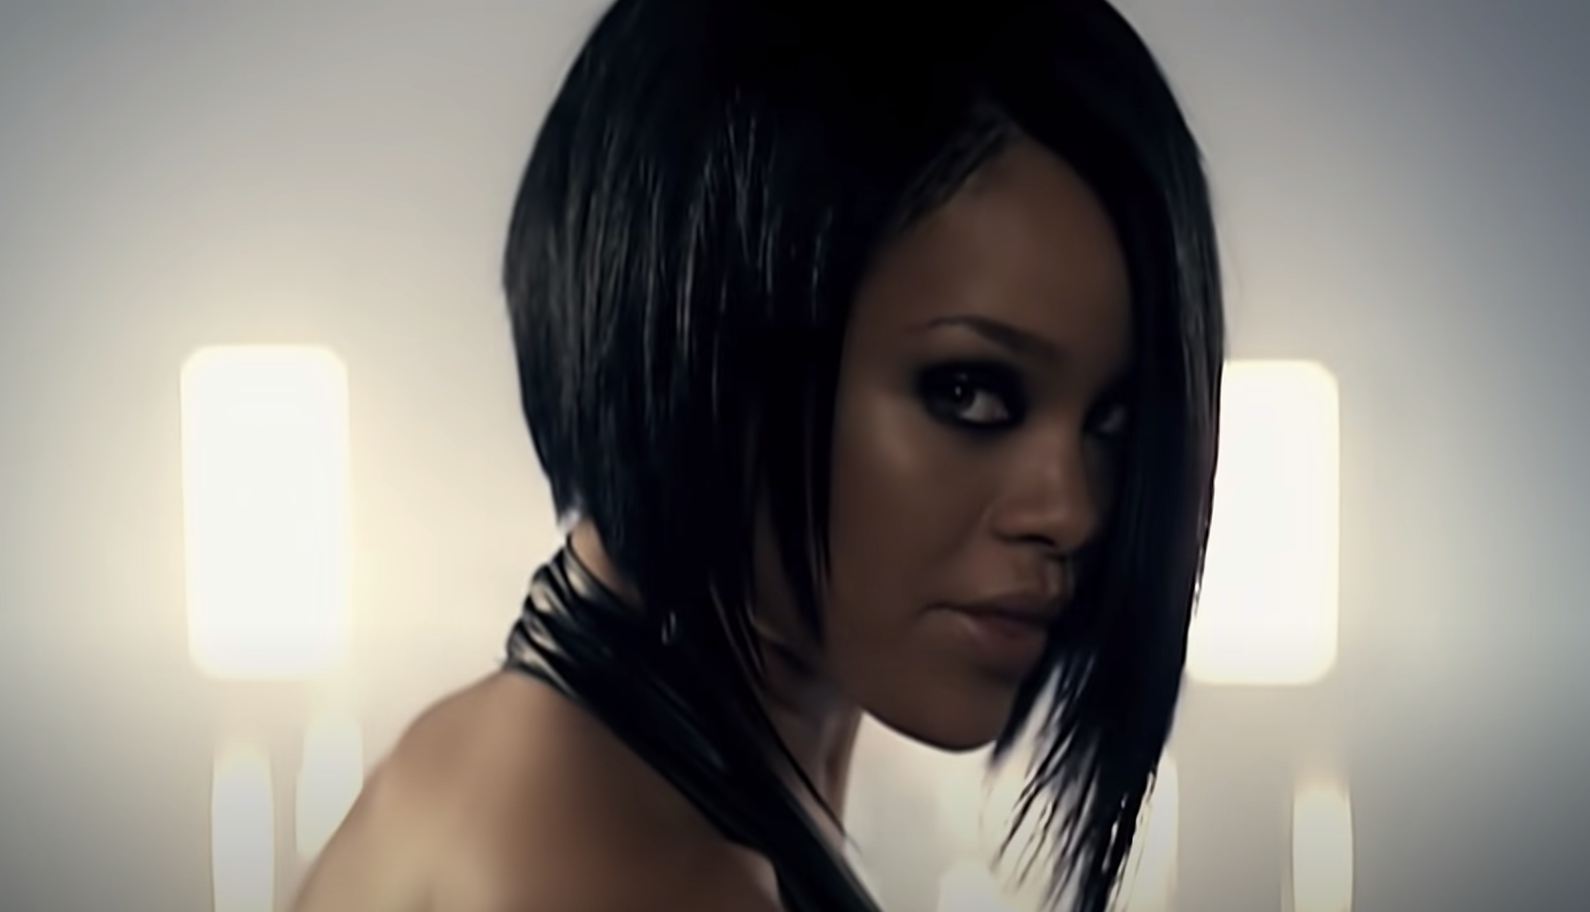 Rihanna staring forward with an impossibly cool haircut